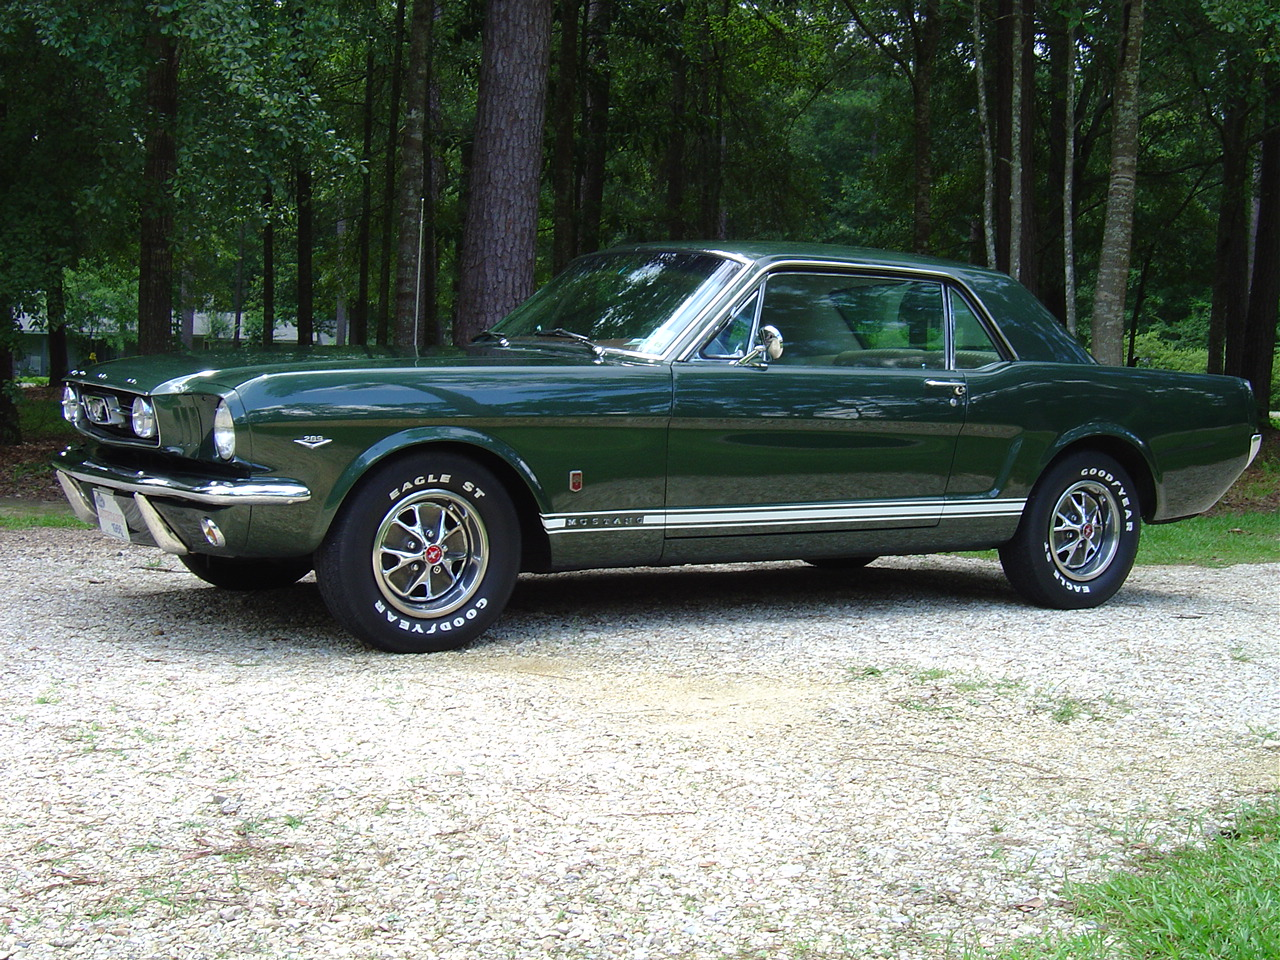 1964 Ford Mustang Fastback Car Autos Gallery Hd Pictures